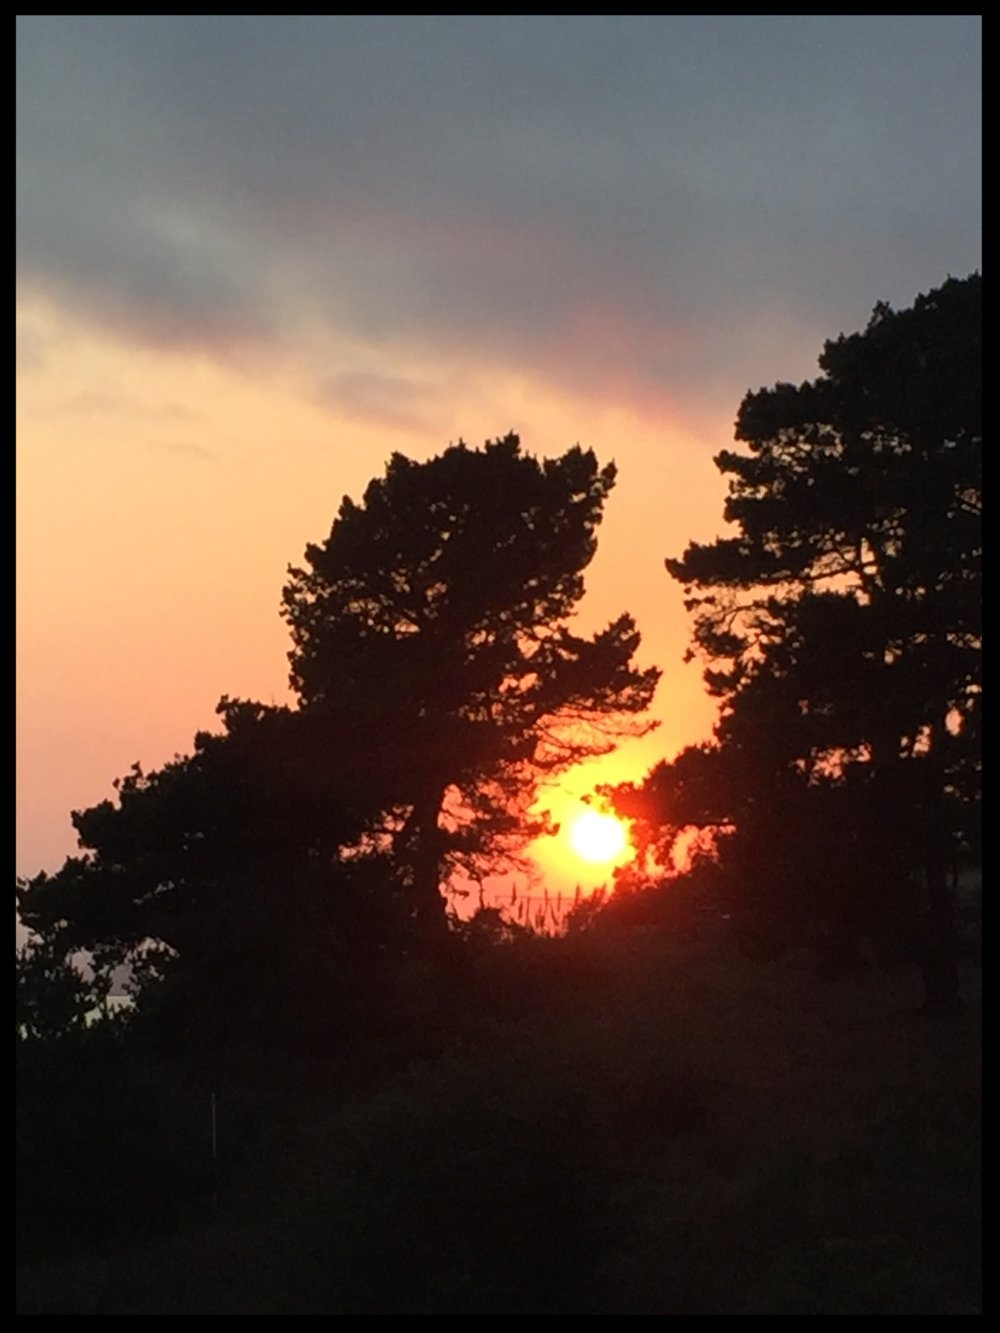 Sunset in Aptos, California